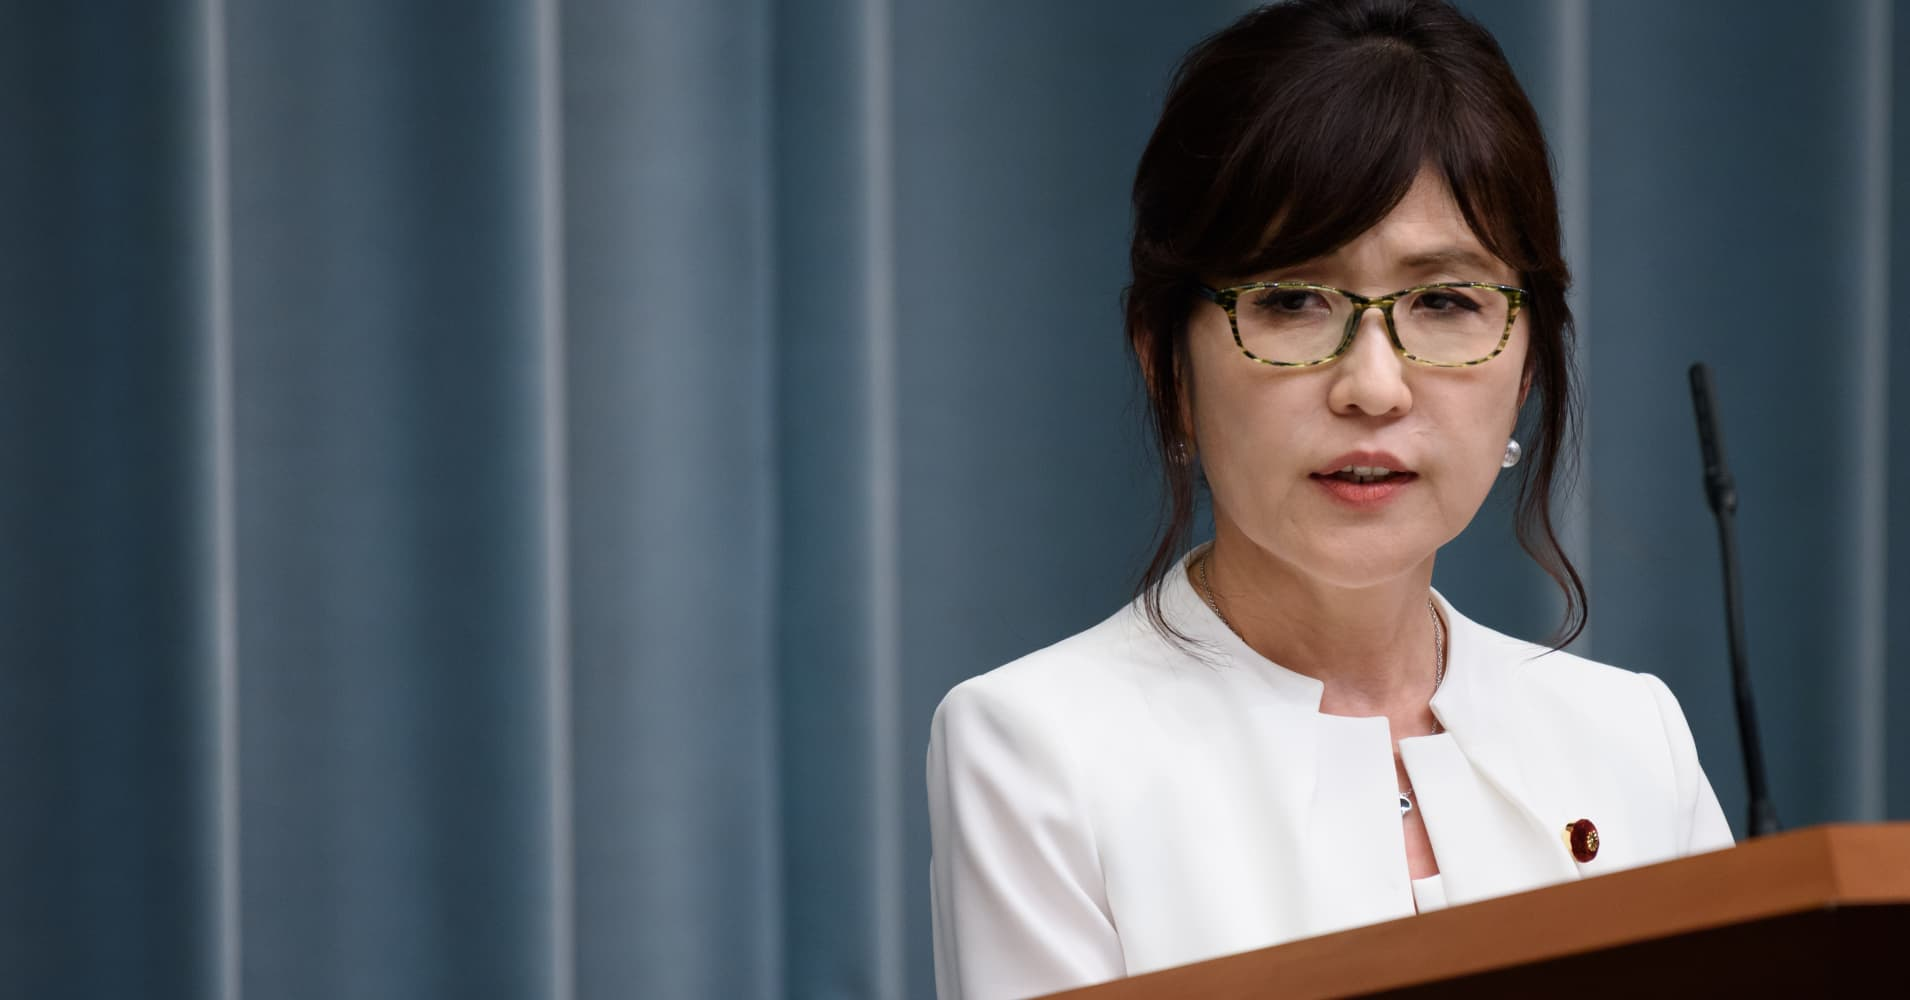 Meet the woman hoping to succeed Japanese Prime Minister Shinzo Abe